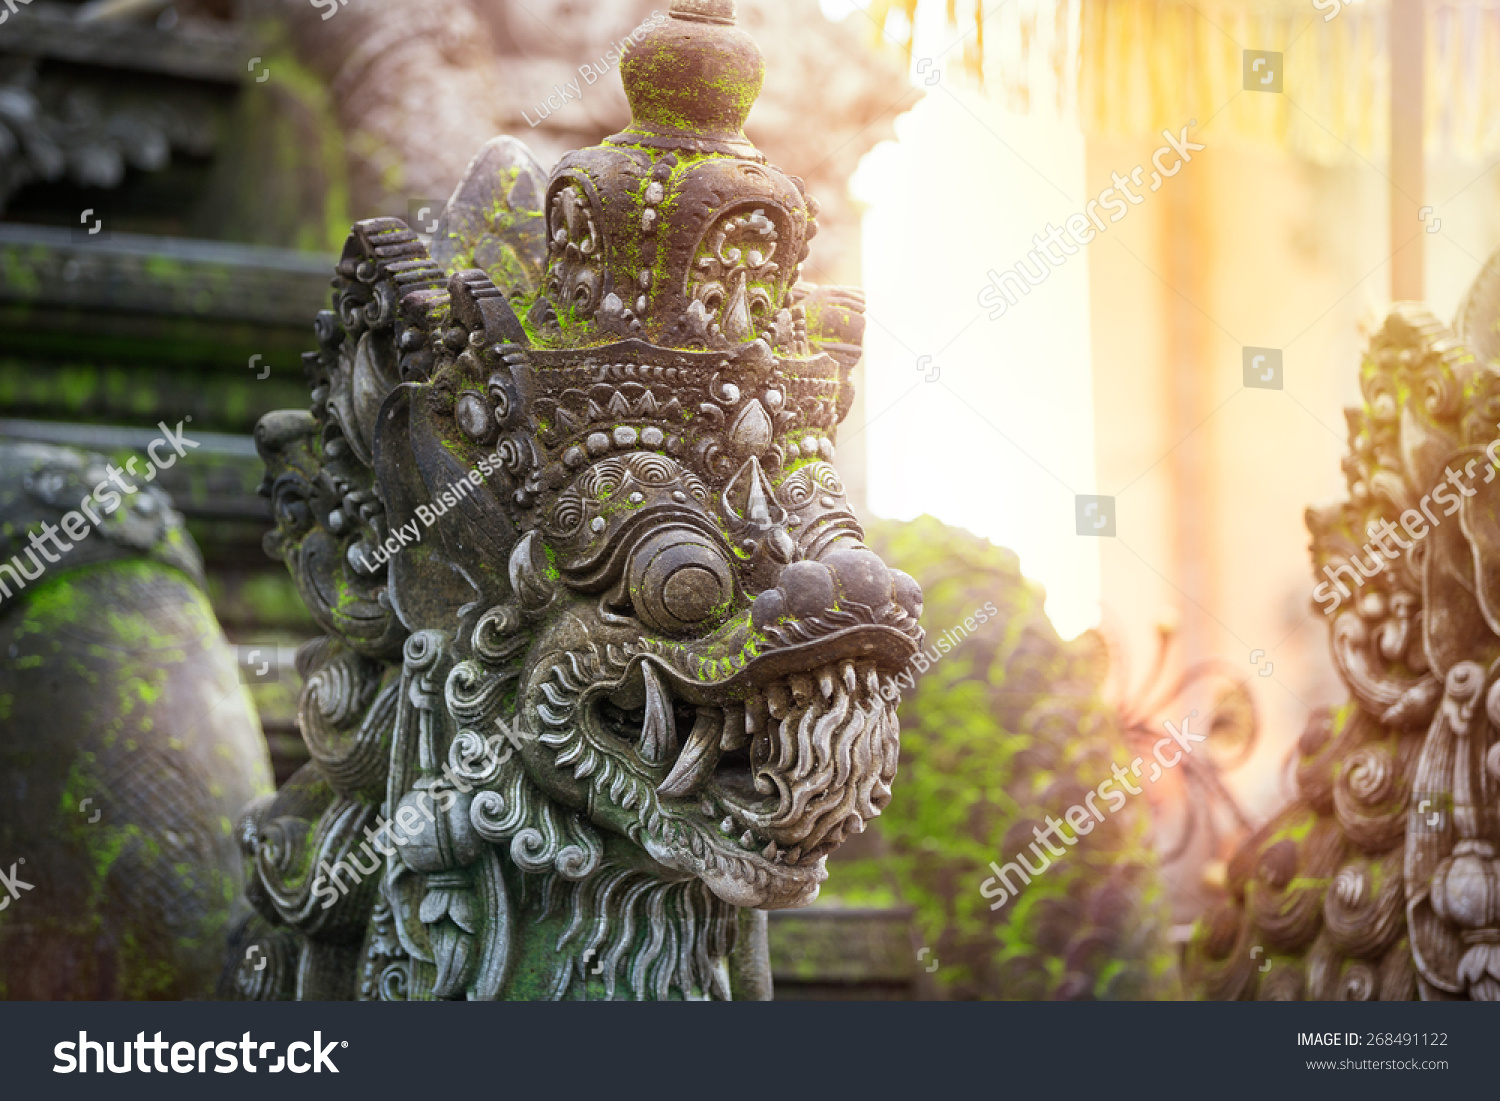 Traditional Balinese stone sculpture art and culture at Bali Indonesia